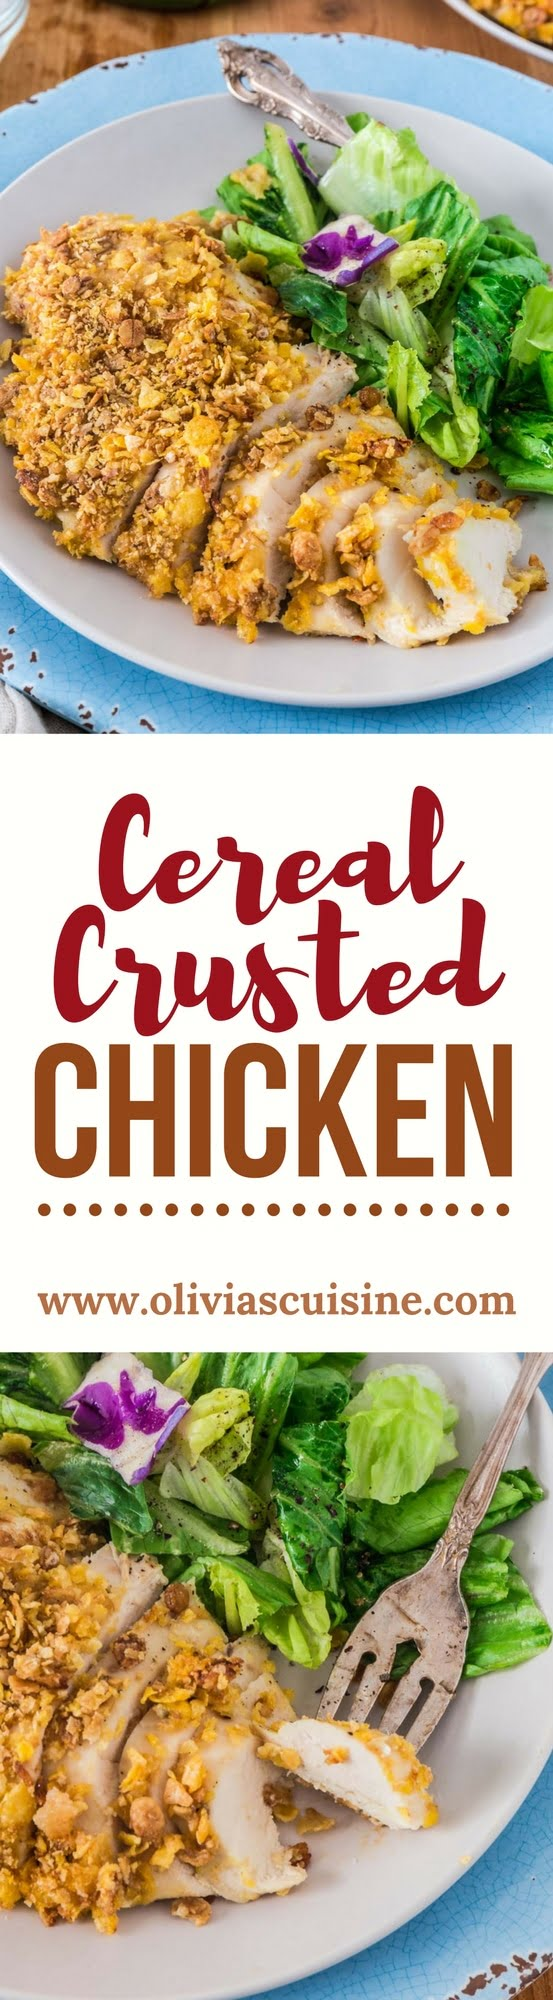 Cereal Crusted Chicken | www.oliviascuisine.com | Looking for fun but healthy chicken dinner options for the family? This Cereal Crusted Chicken is the answer! Juicy, amazingly crunchy and slightly sweet from the Honey Bunches of Oats®, it will definitely be a hit with the kids.